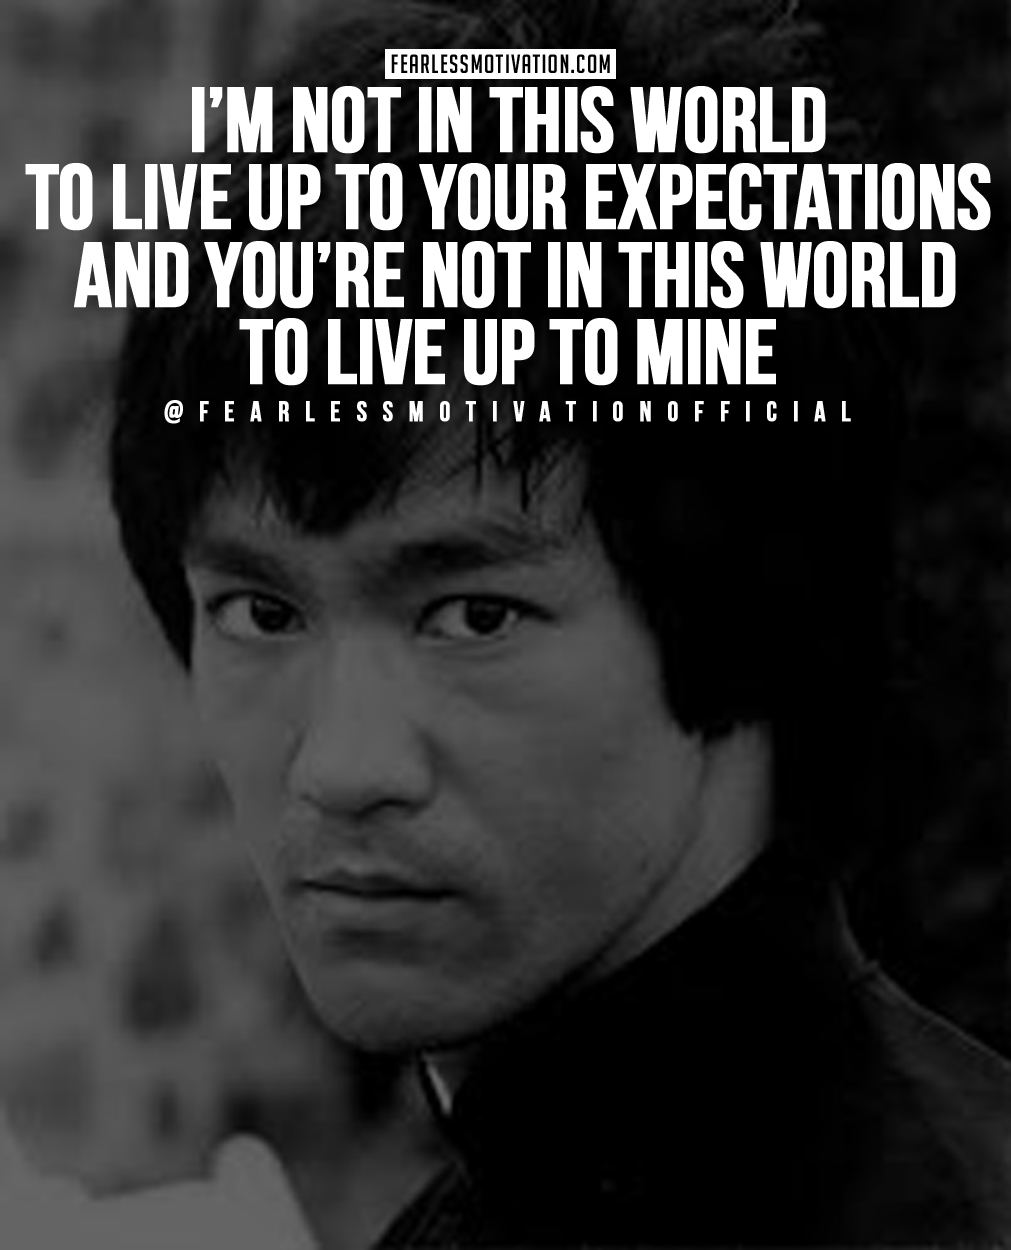 Connu Top 10 Bruce Lee Quotes to Step Up Your Mental Game JR57